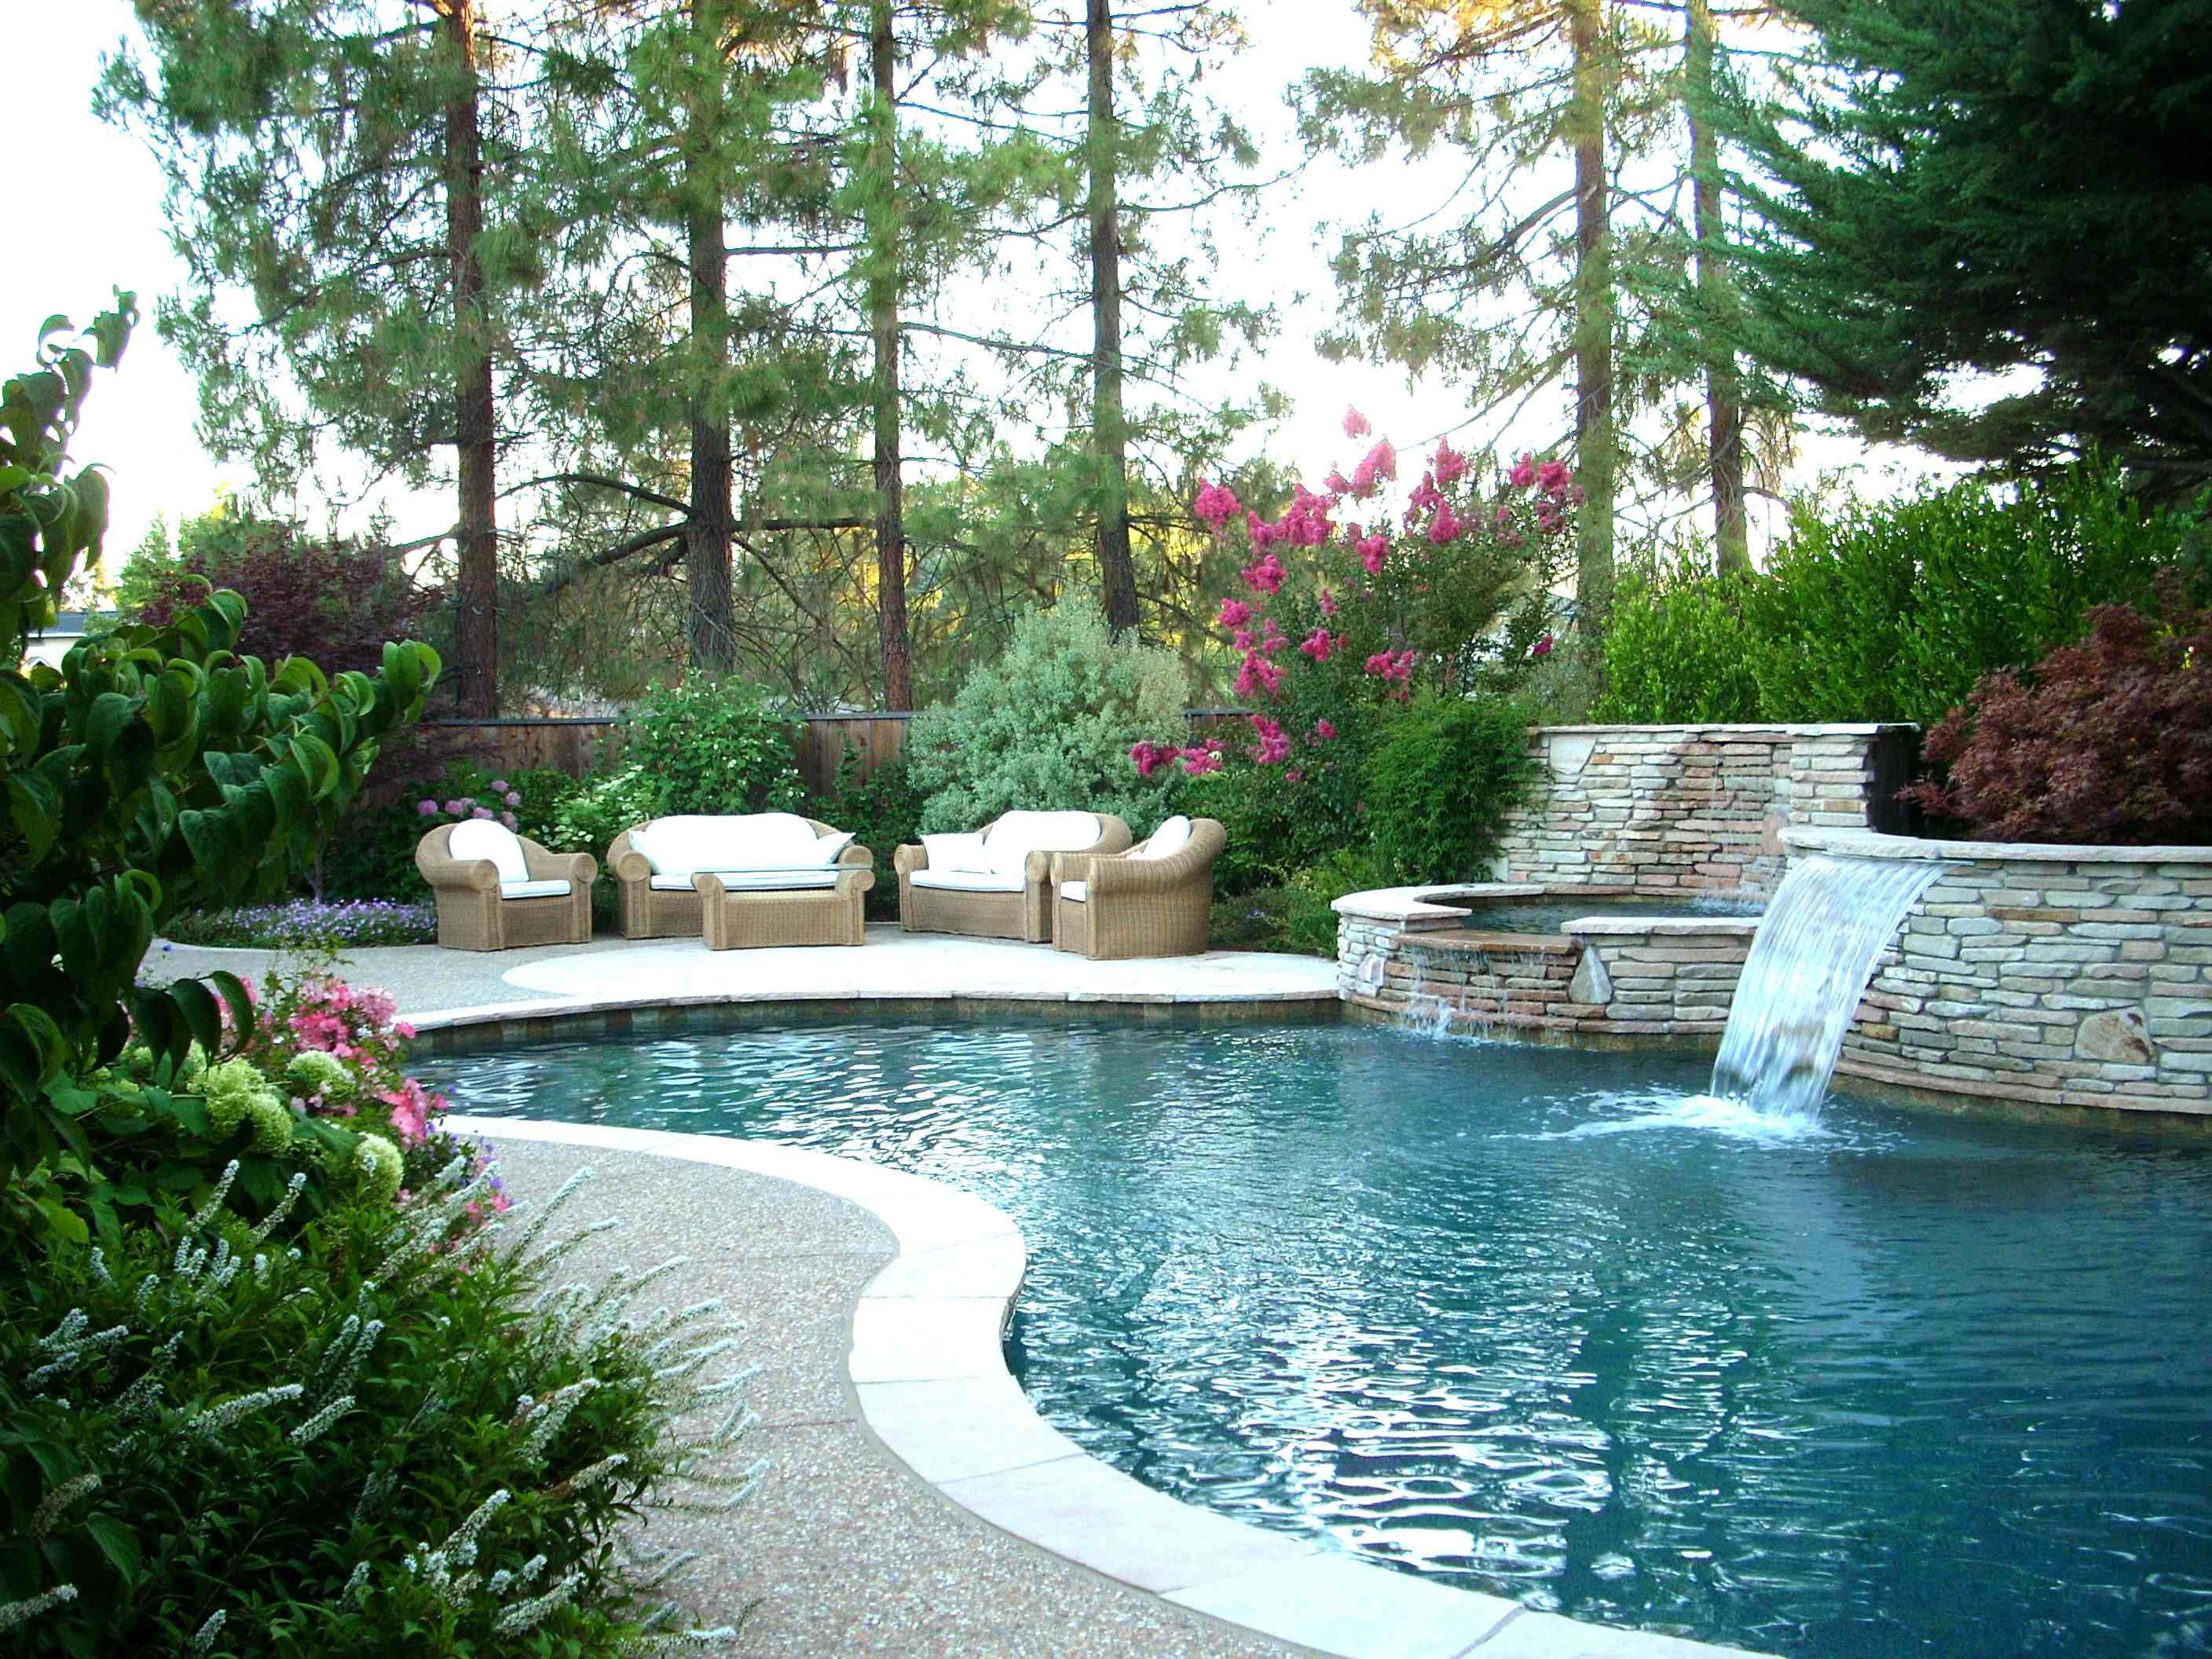 Backyard pool landscaping ideas homesfeed House backyard landscape